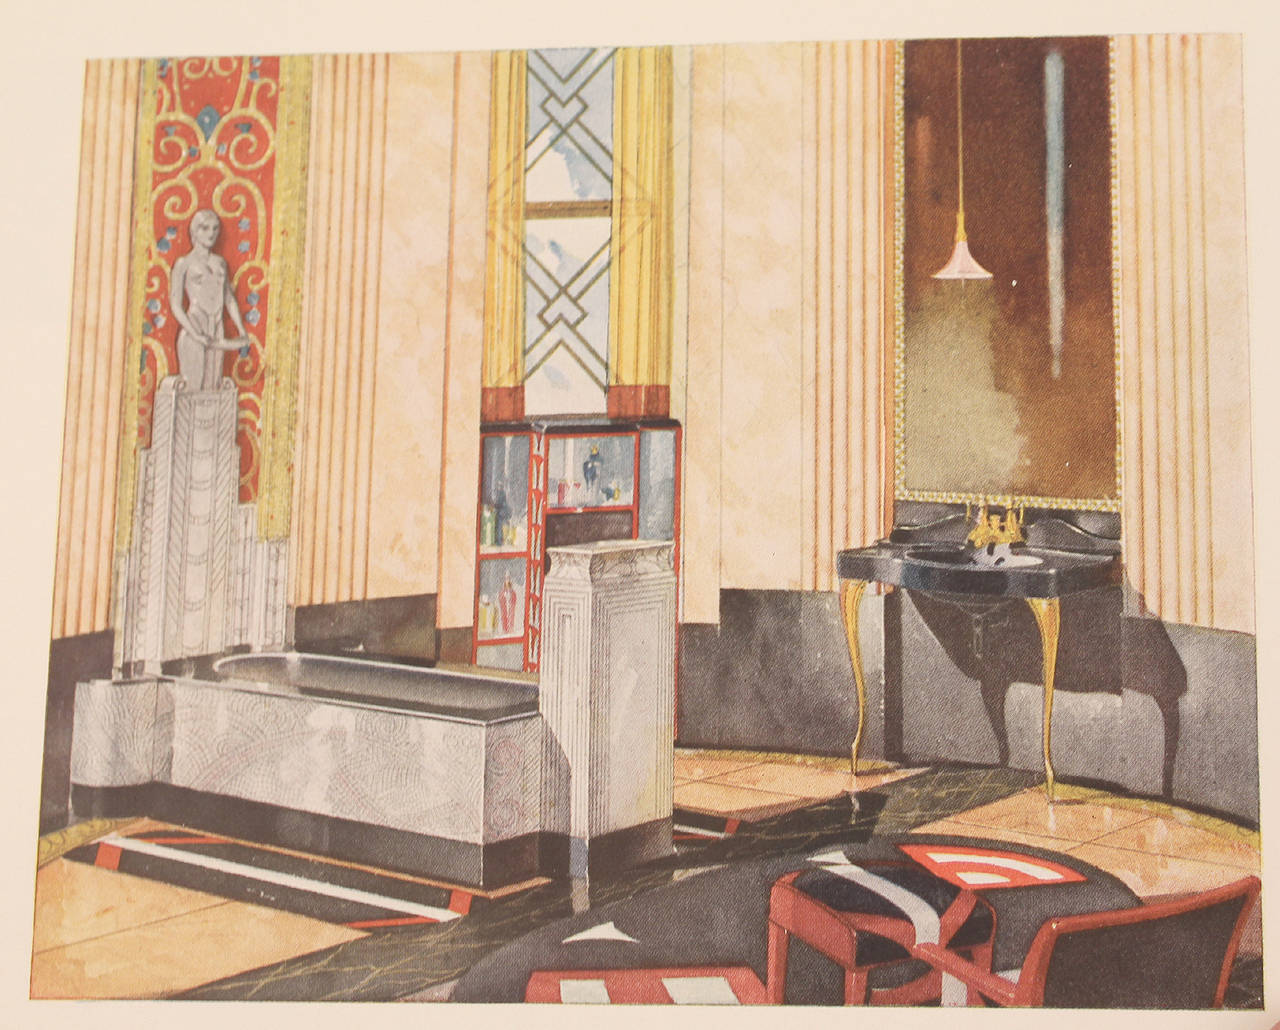 1931 art deco bathroom interior design architecture for Interior design reference images